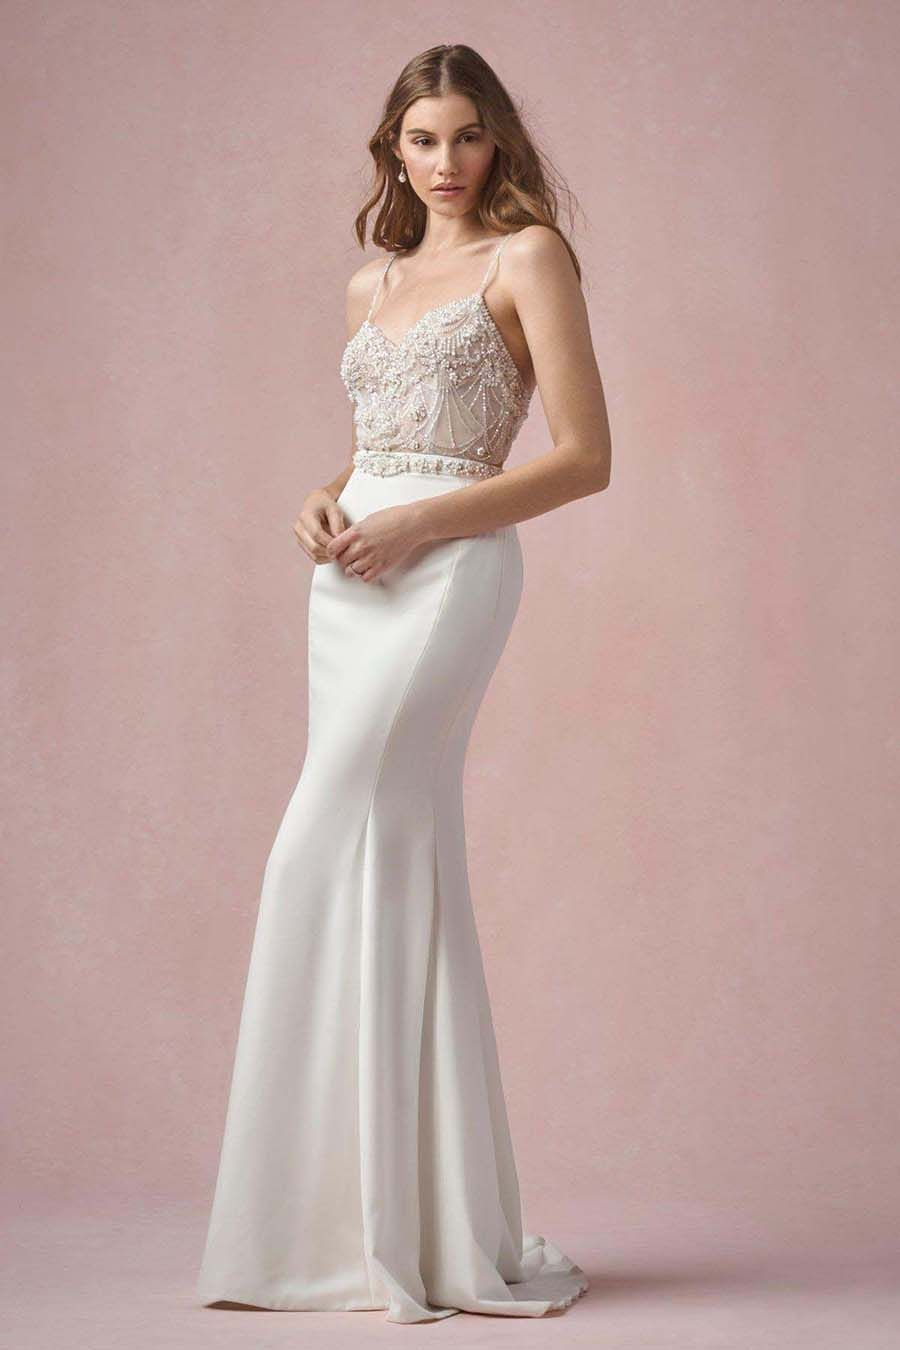 Wedding dresses rental  Spoilt for Choice Newest Bridal Boutiques in Singapore and Dress